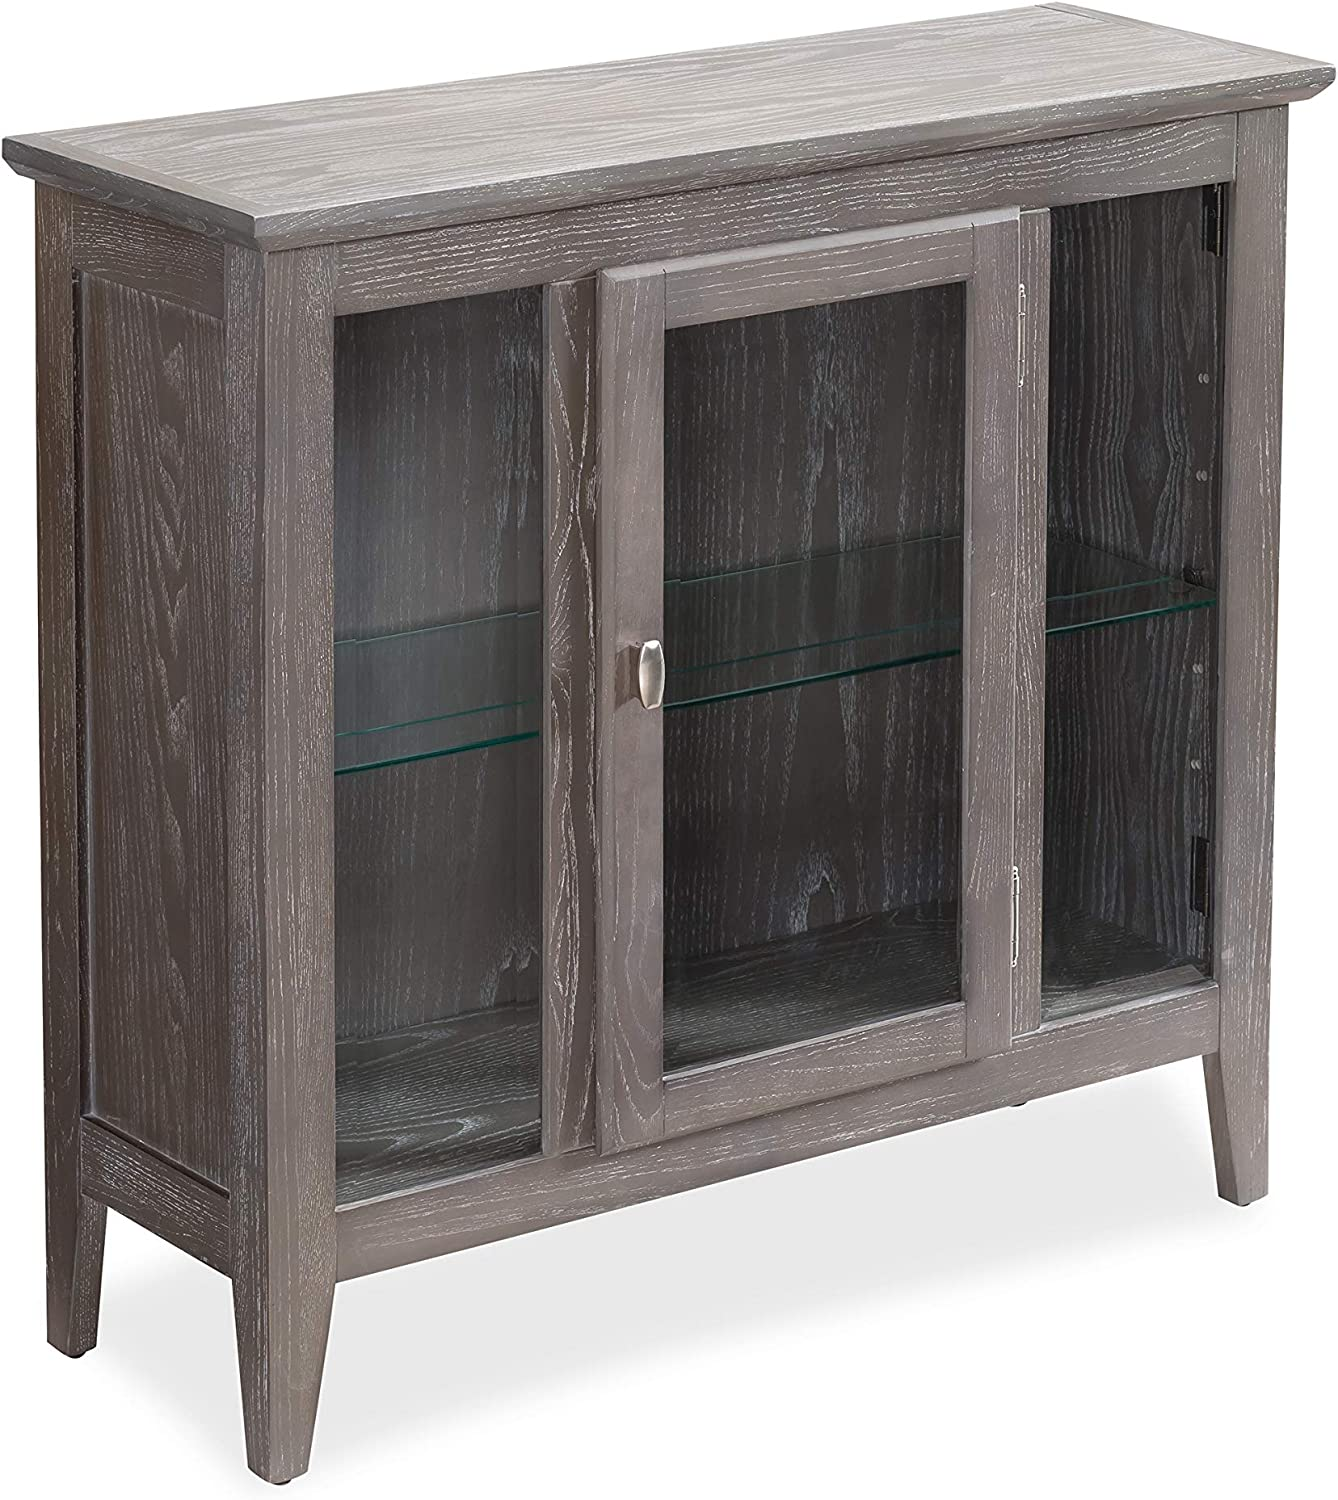 Leick Home Hall Console, Weathered Gray